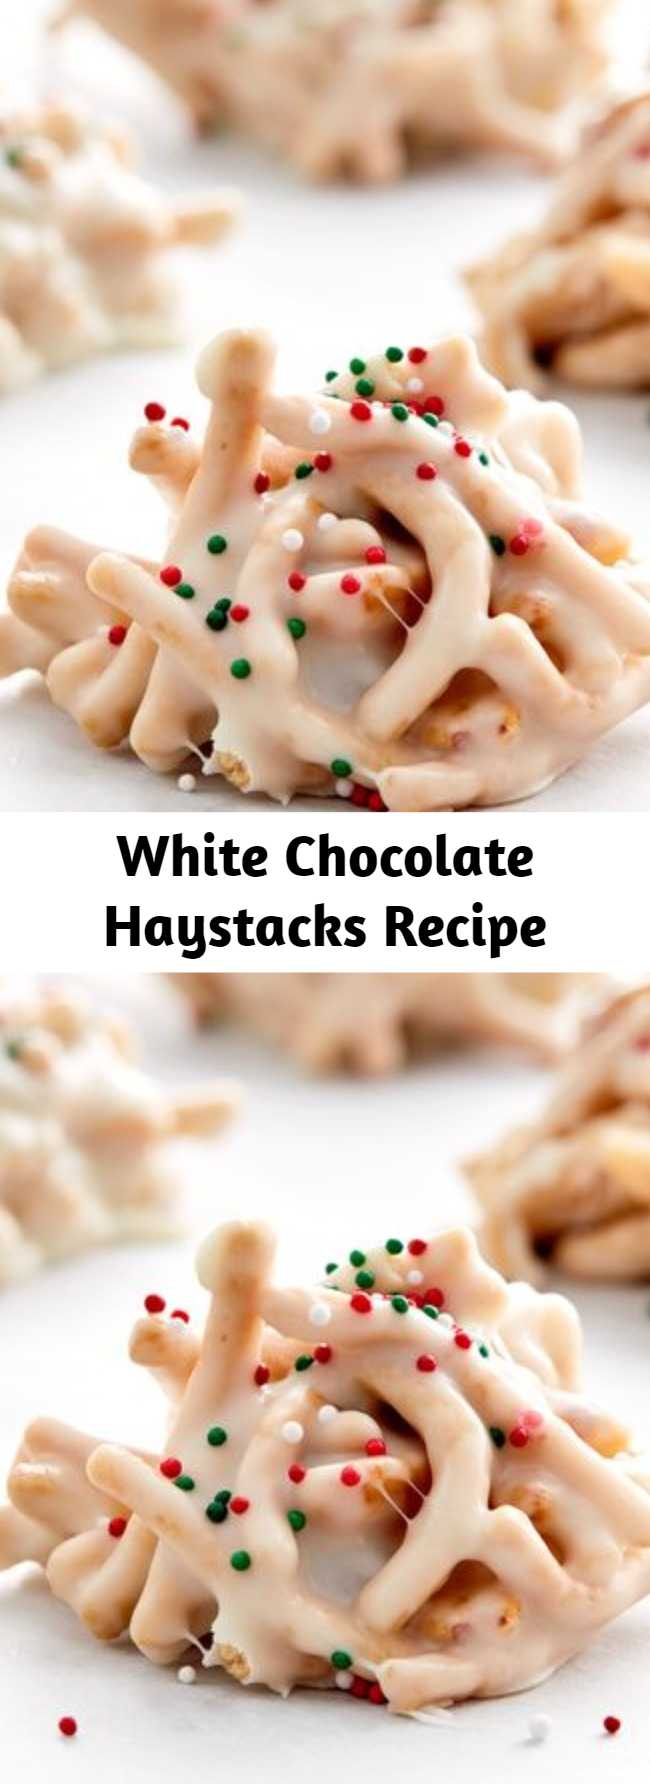 White Chocolate Haystacks Recipe - This festive spin on a classic no-bake treat is a special addition to your holiday cookie tray. Chow mein noodles and salted peanuts are tossed with melted white chips, marshmallows and a surprise ingredient--vanilla frosting--and finished with holiday sprinkles. This recipe makes a large batch, perfect for holiday get-togethers.